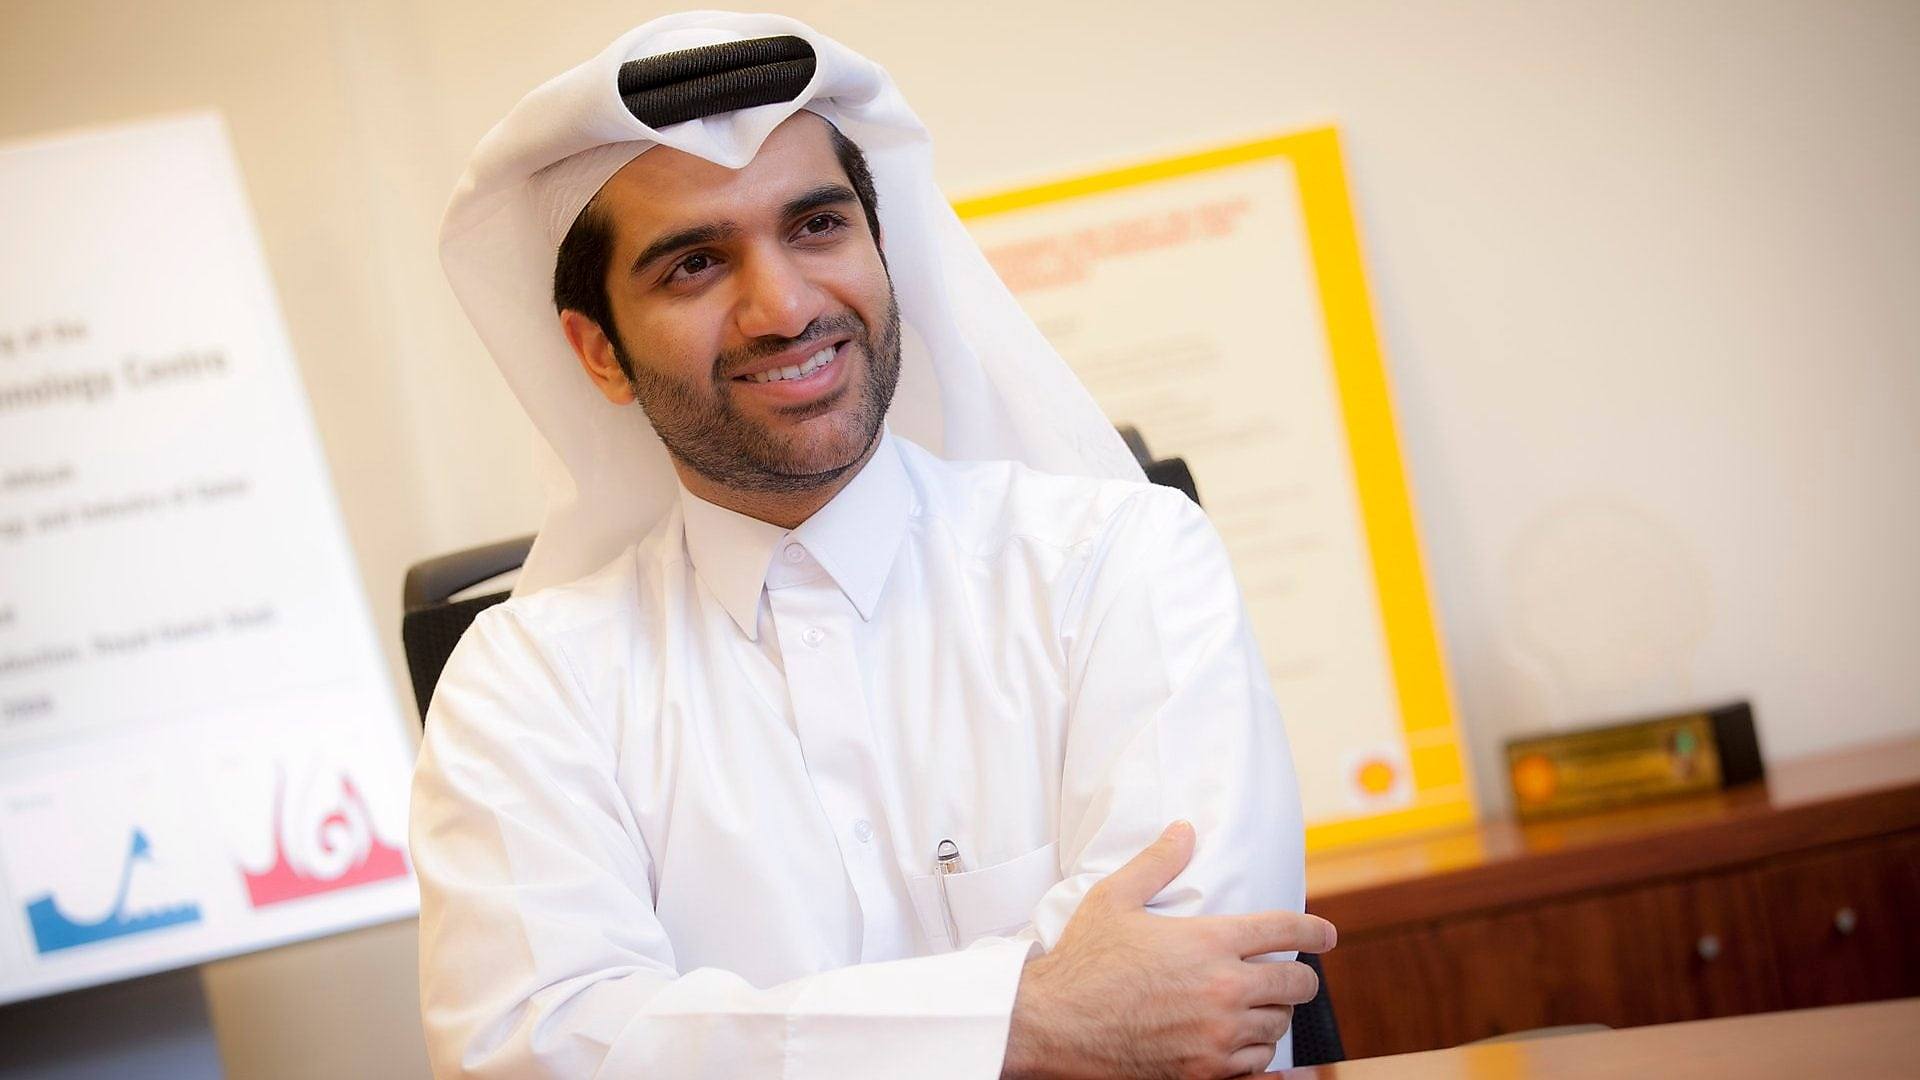 Hassan Al-Mulla: Adding Value to Qatar and its People